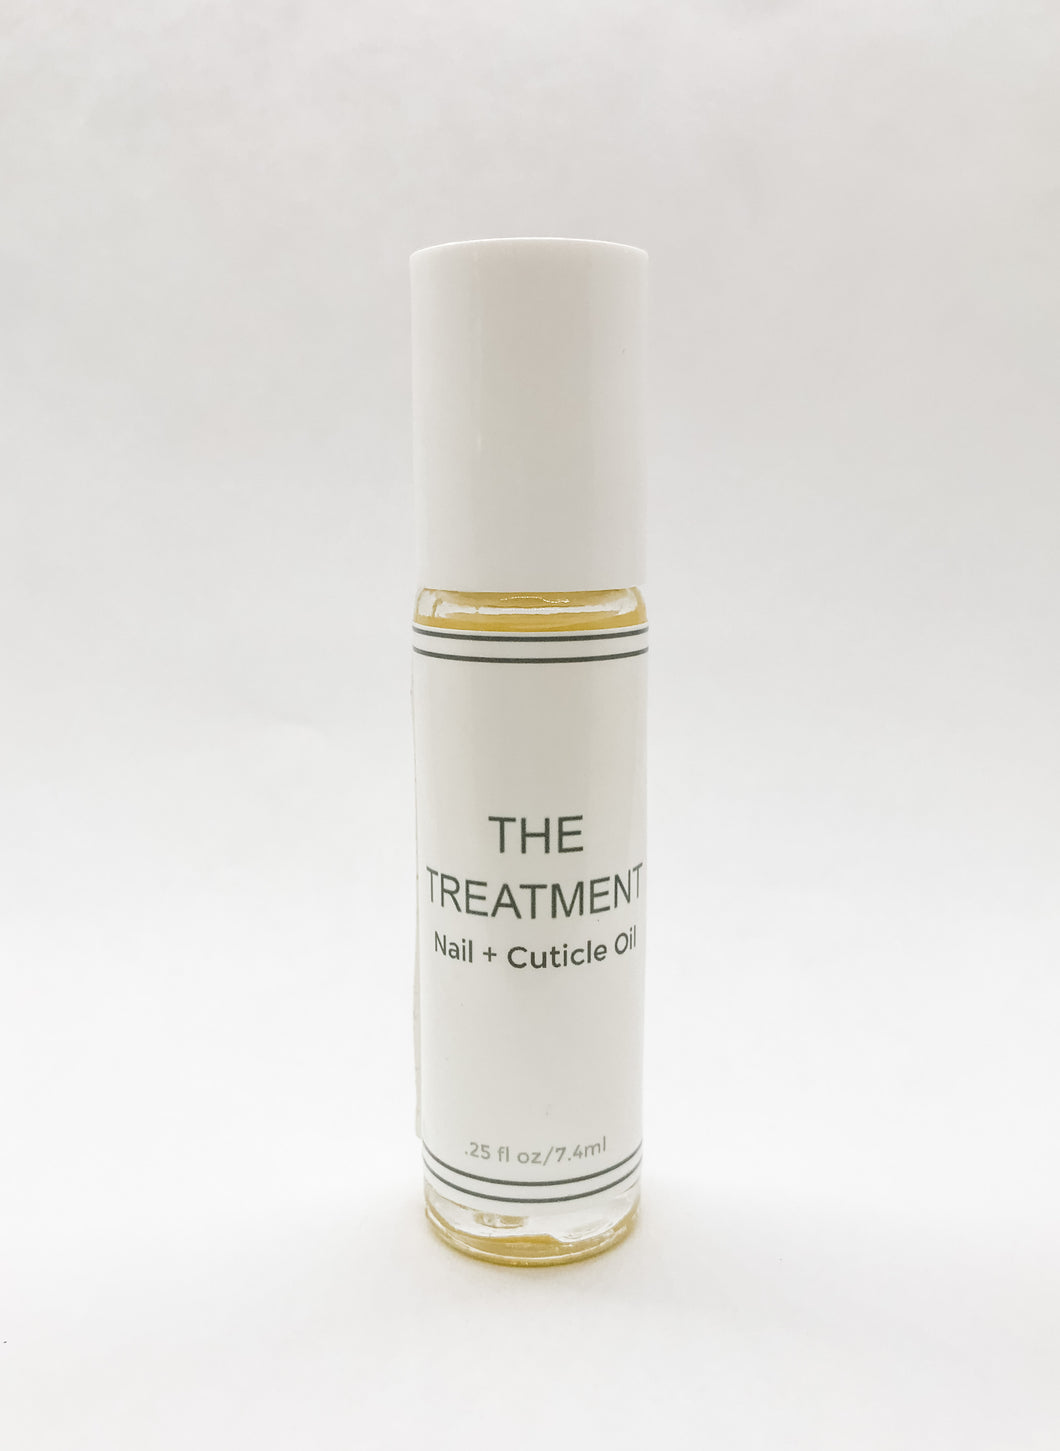 Nail + Cuticle Oil